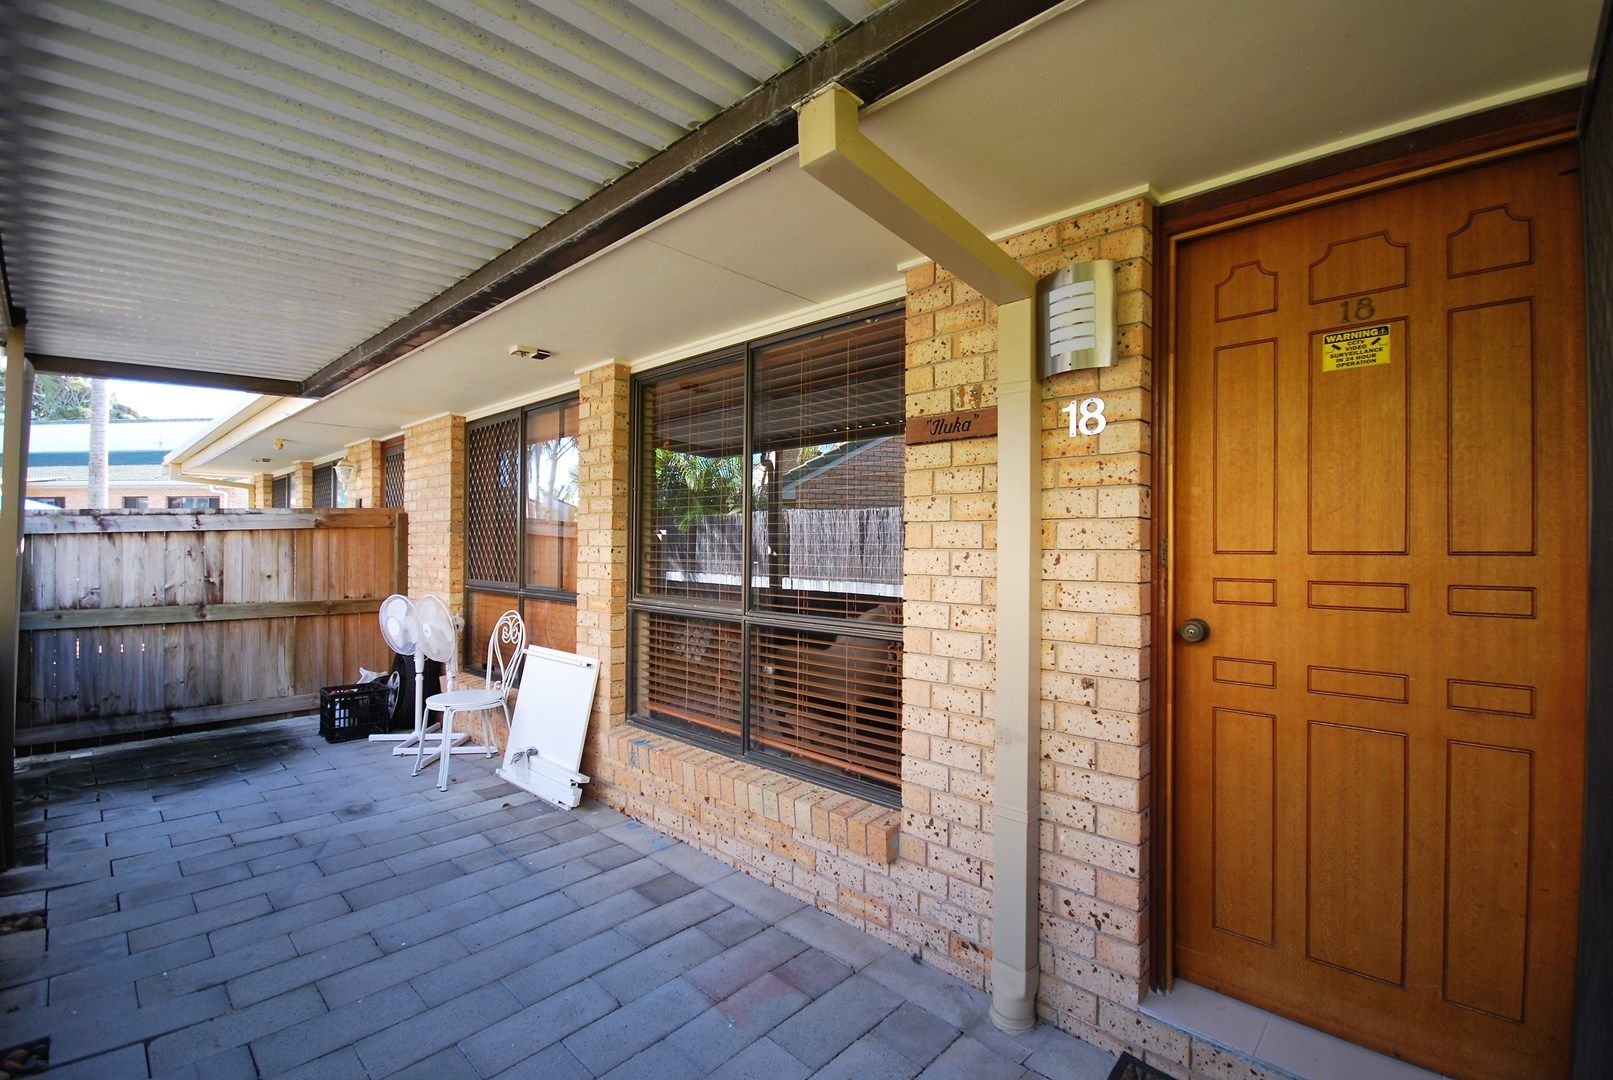 18/30 Sportsman Ave, Mermaid Beach QLD 4218, Image 1